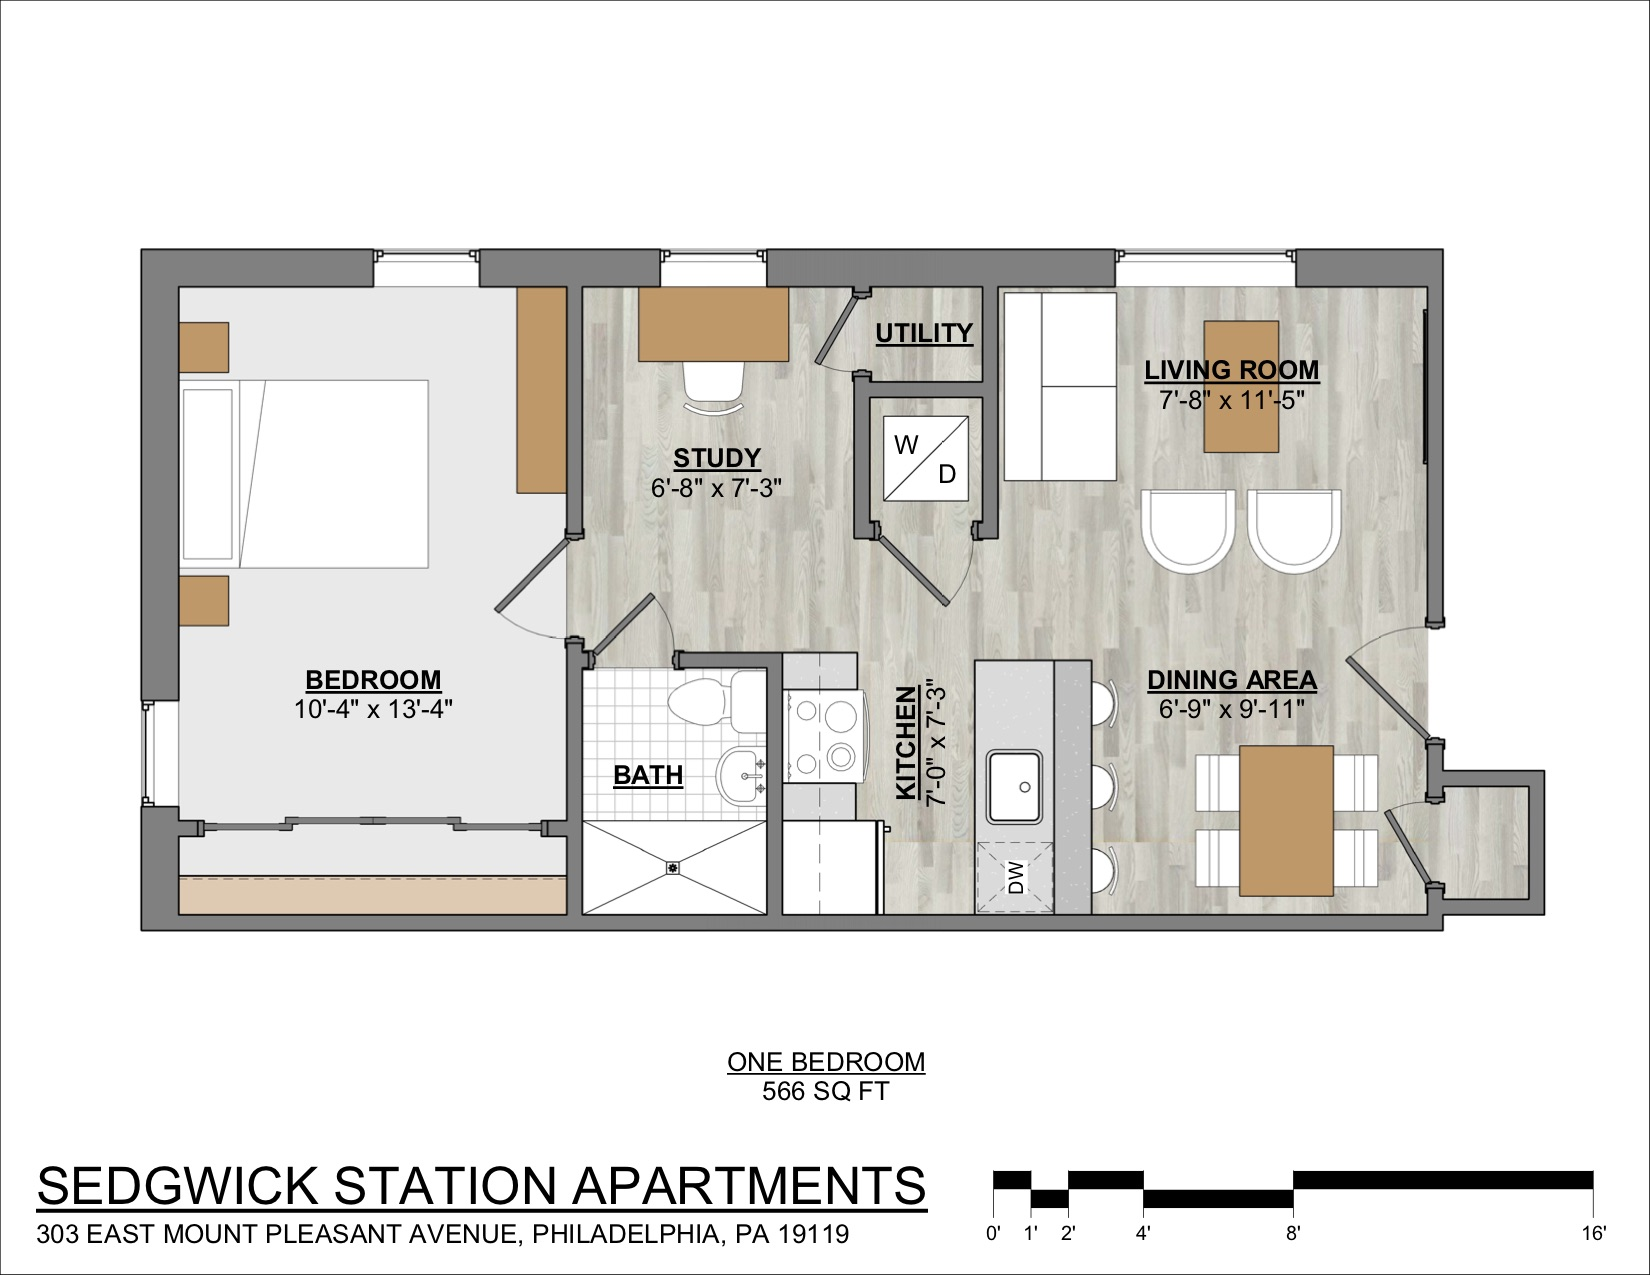 Sedgwick Station 1-bedroom apartment floor plan in Mt. Airy with spacious bedroom.